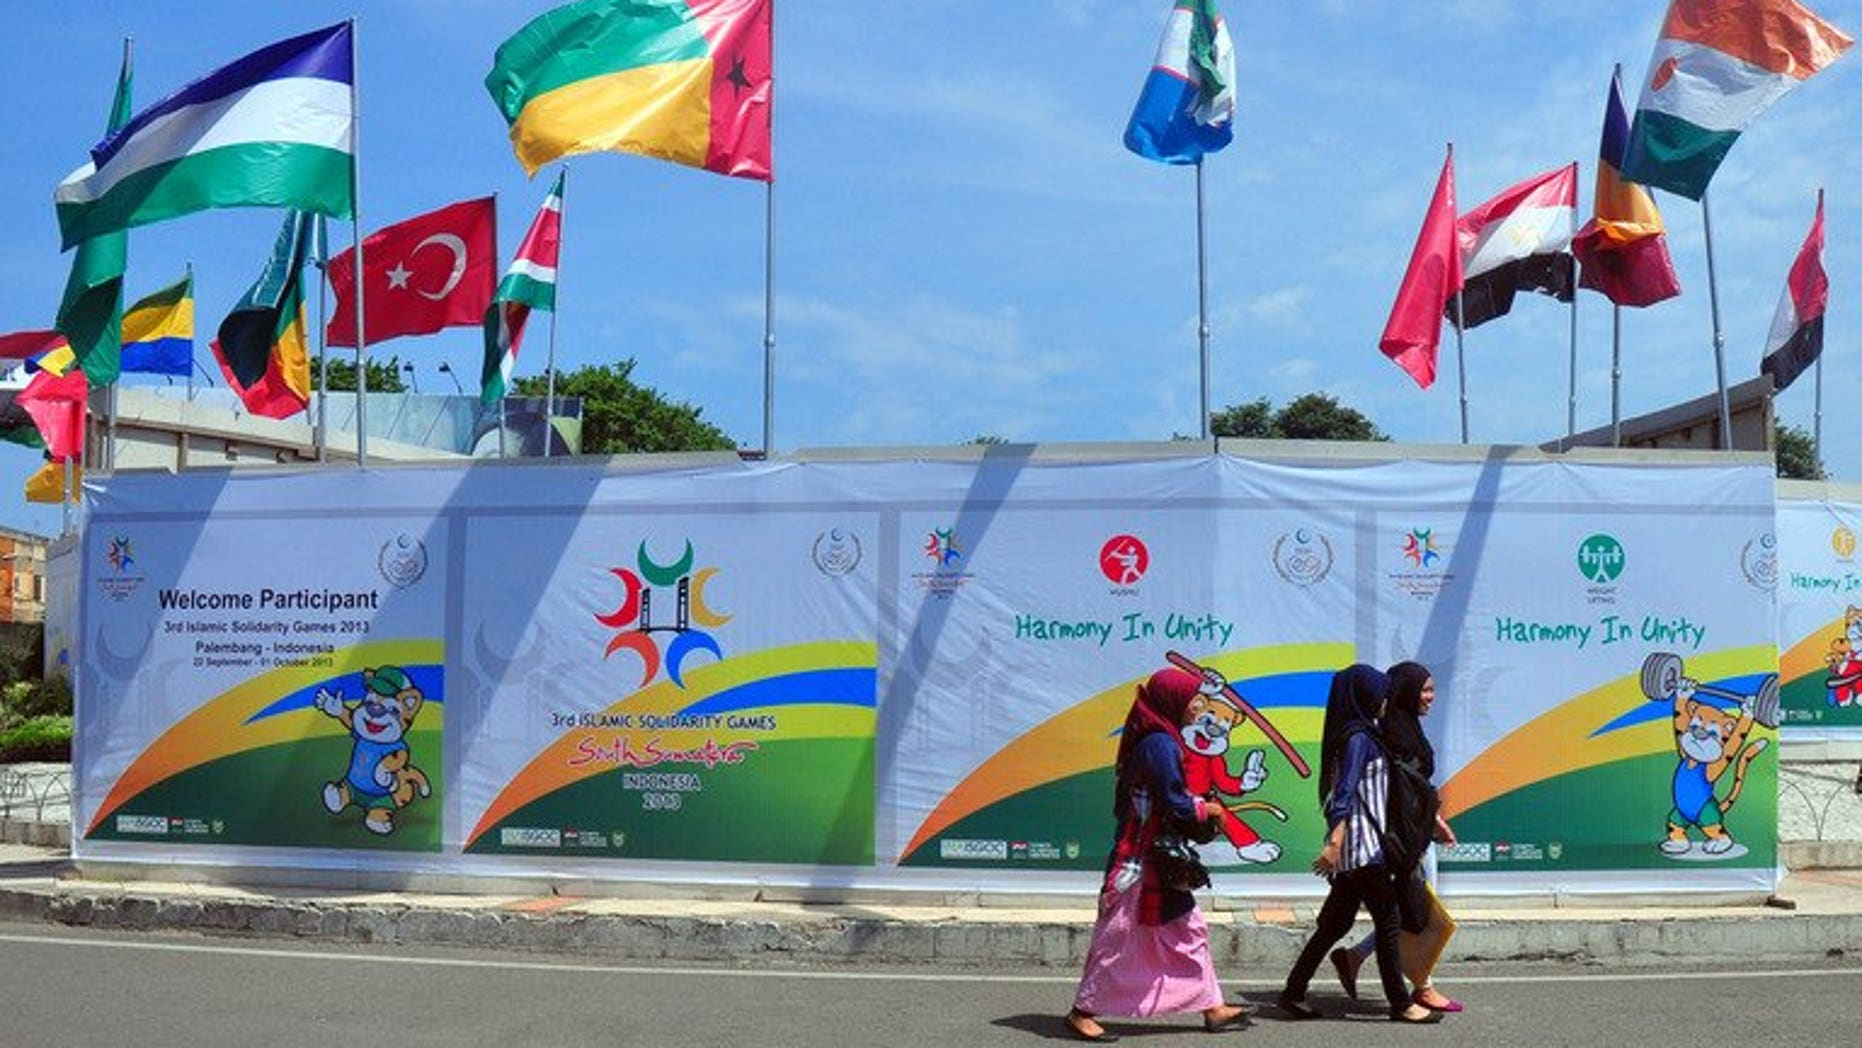 The flags of countries participating in the Islamic Solidarity Games decorate a venue at the Palembang sports complex in Palembang on Indonesia's Sumatra island on September 20, 2013. The games got under way in Indonesia on Sunday despite a chaotic run-up to the event and debates over appropriate outfits for Muslim athletes.